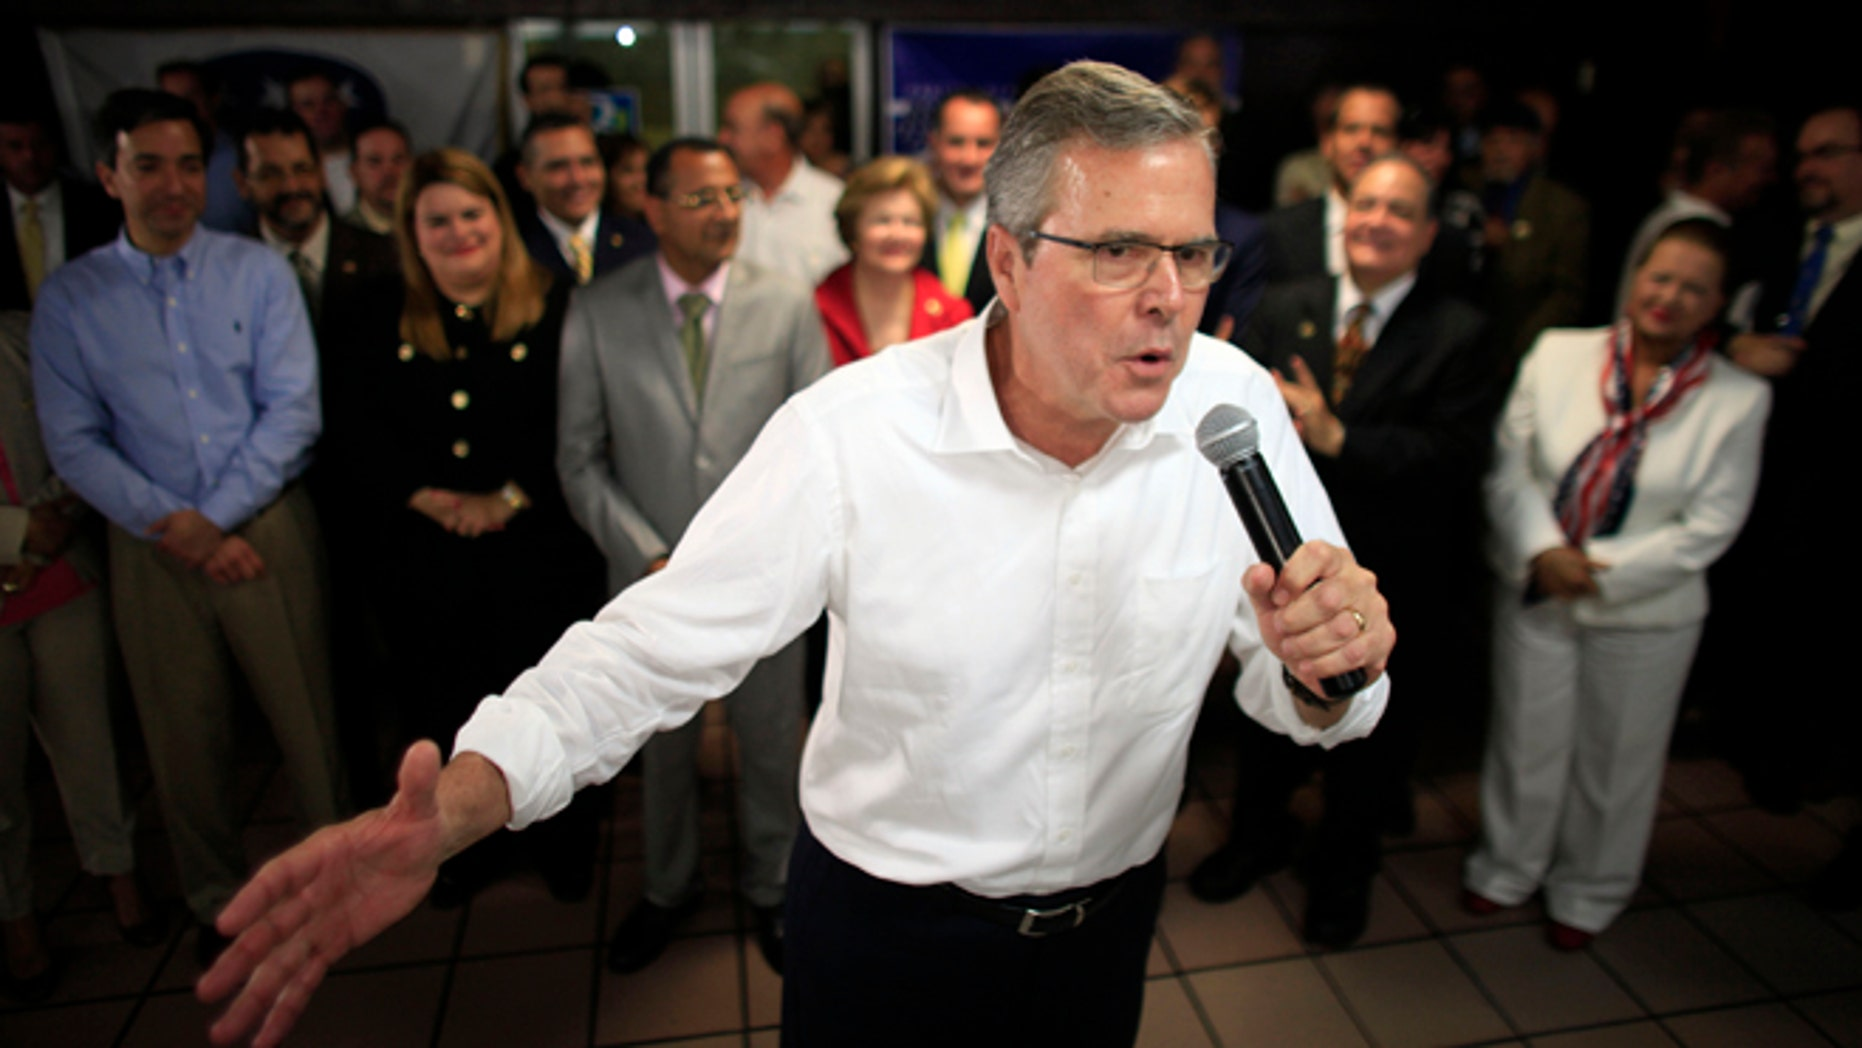 Jeb Bush speaks at a town hall meeting April 28, 2015. Hillary Rodham Clinton's challenge to the GOP on immigration is an early counter to Jeb Bush and other Republican White House contenders seeking Hispanic voters. Among them are GOP lawmakers who once opposed an immigration overhaul in Congress but now say they may be willing to allow millions living in the country illegally to stay. (AP Photo/Ricardo Arduengo)